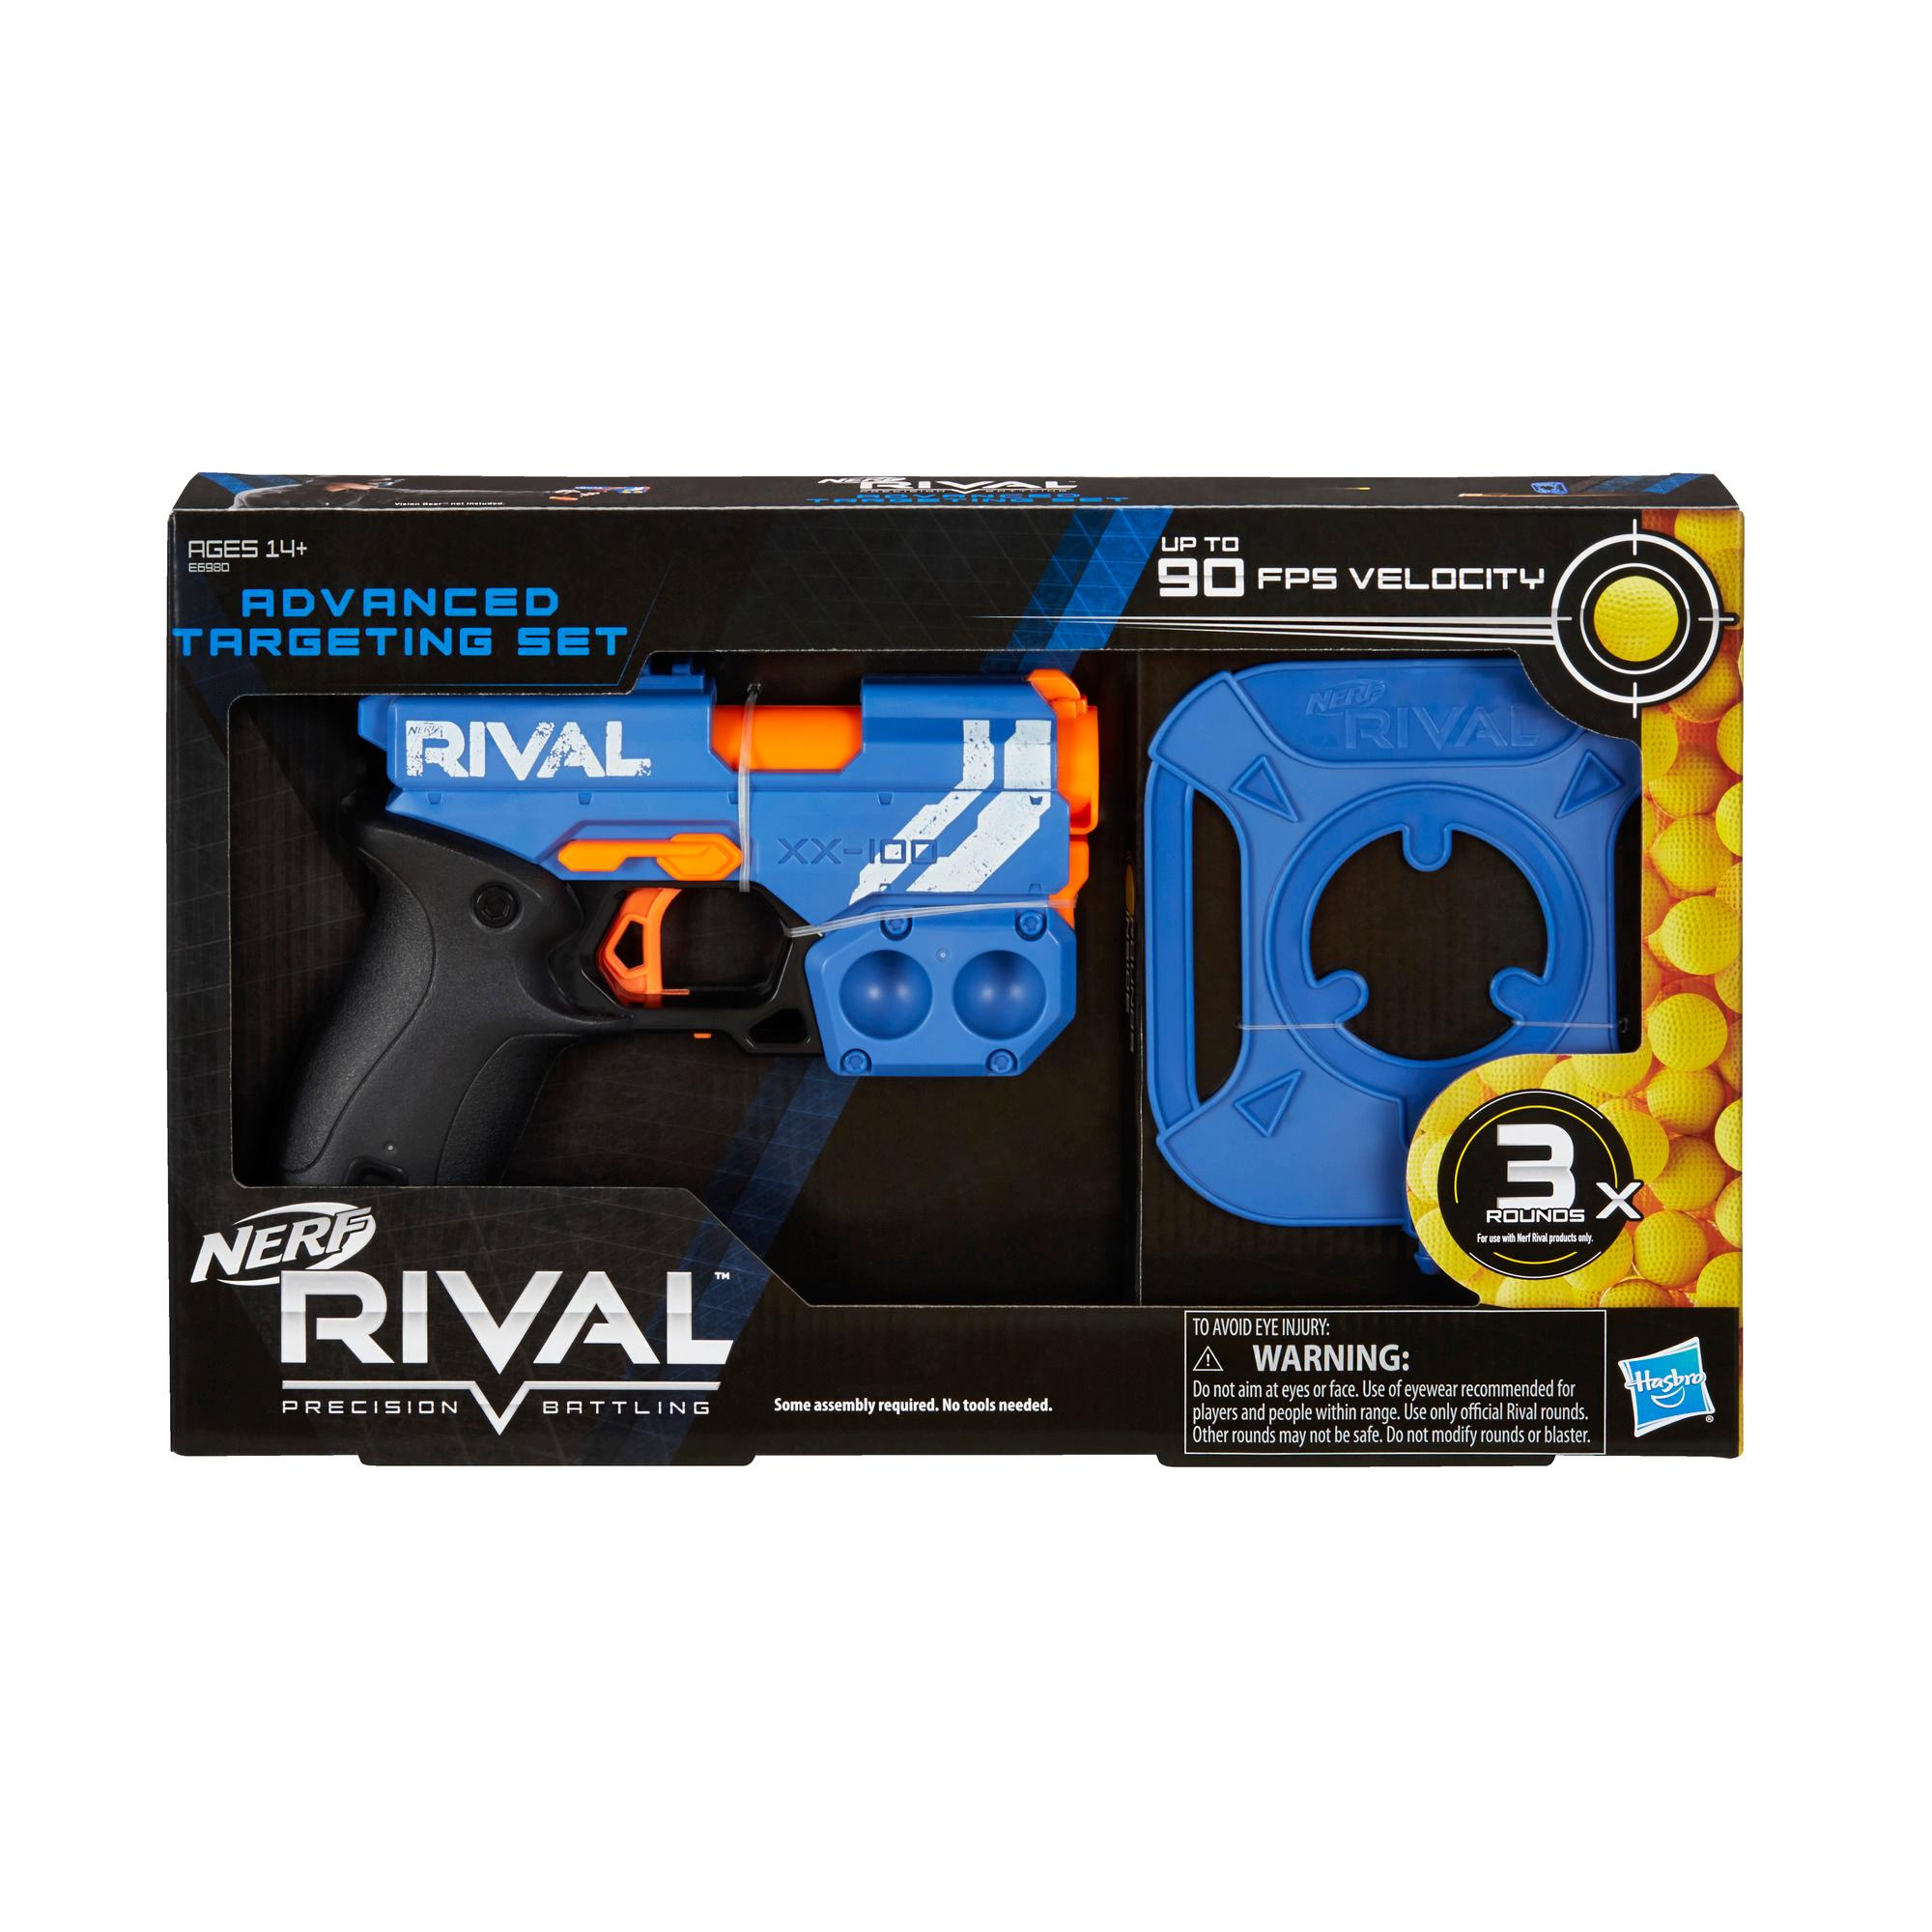 Nerf Rival Advanced Targeting Set -- Breech-Load Blaster, Suction Target, 3 Official Nerf Rival Rounds